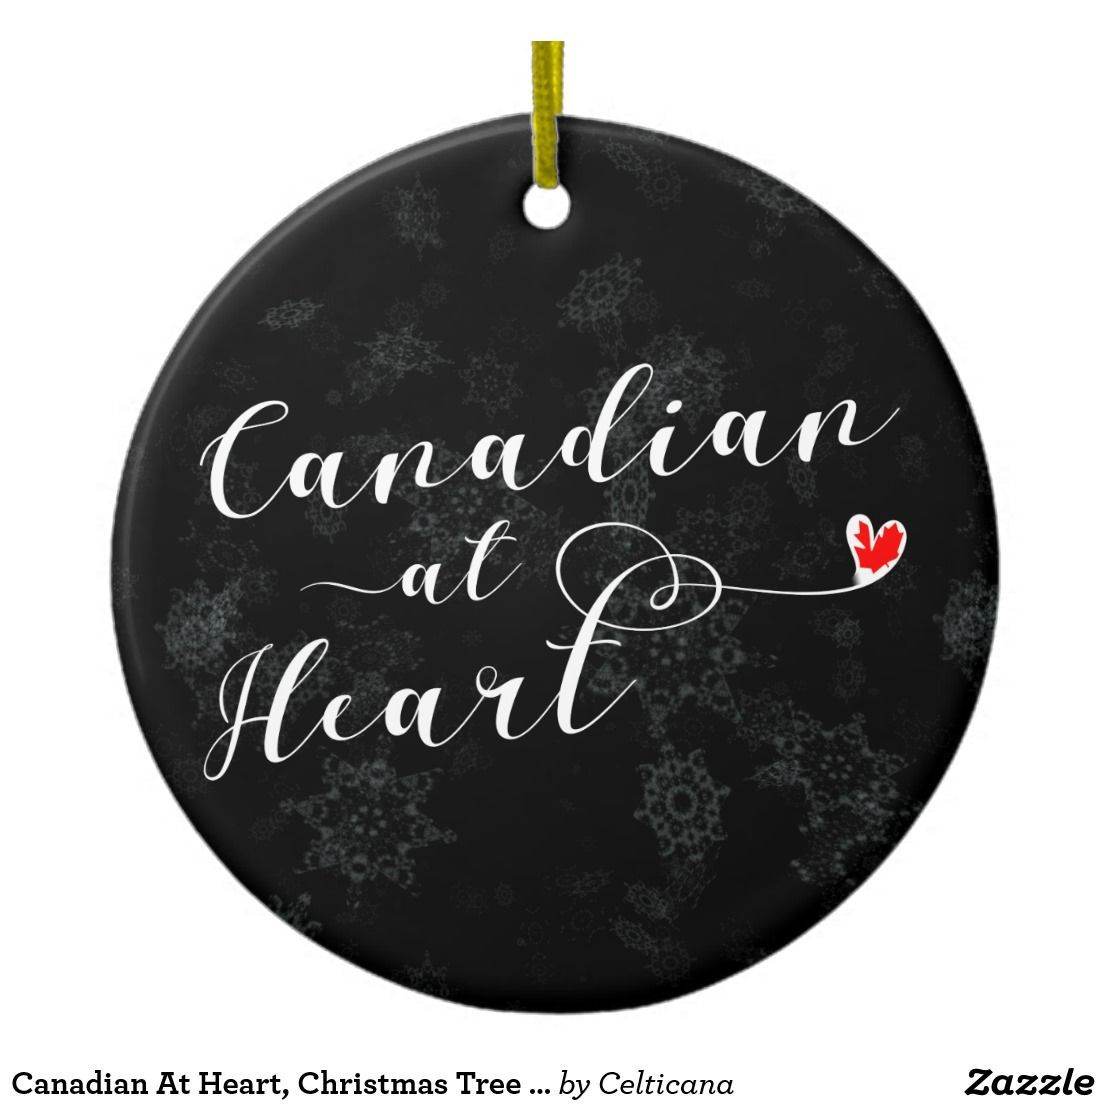 Canadian at heart christmas tree ornament